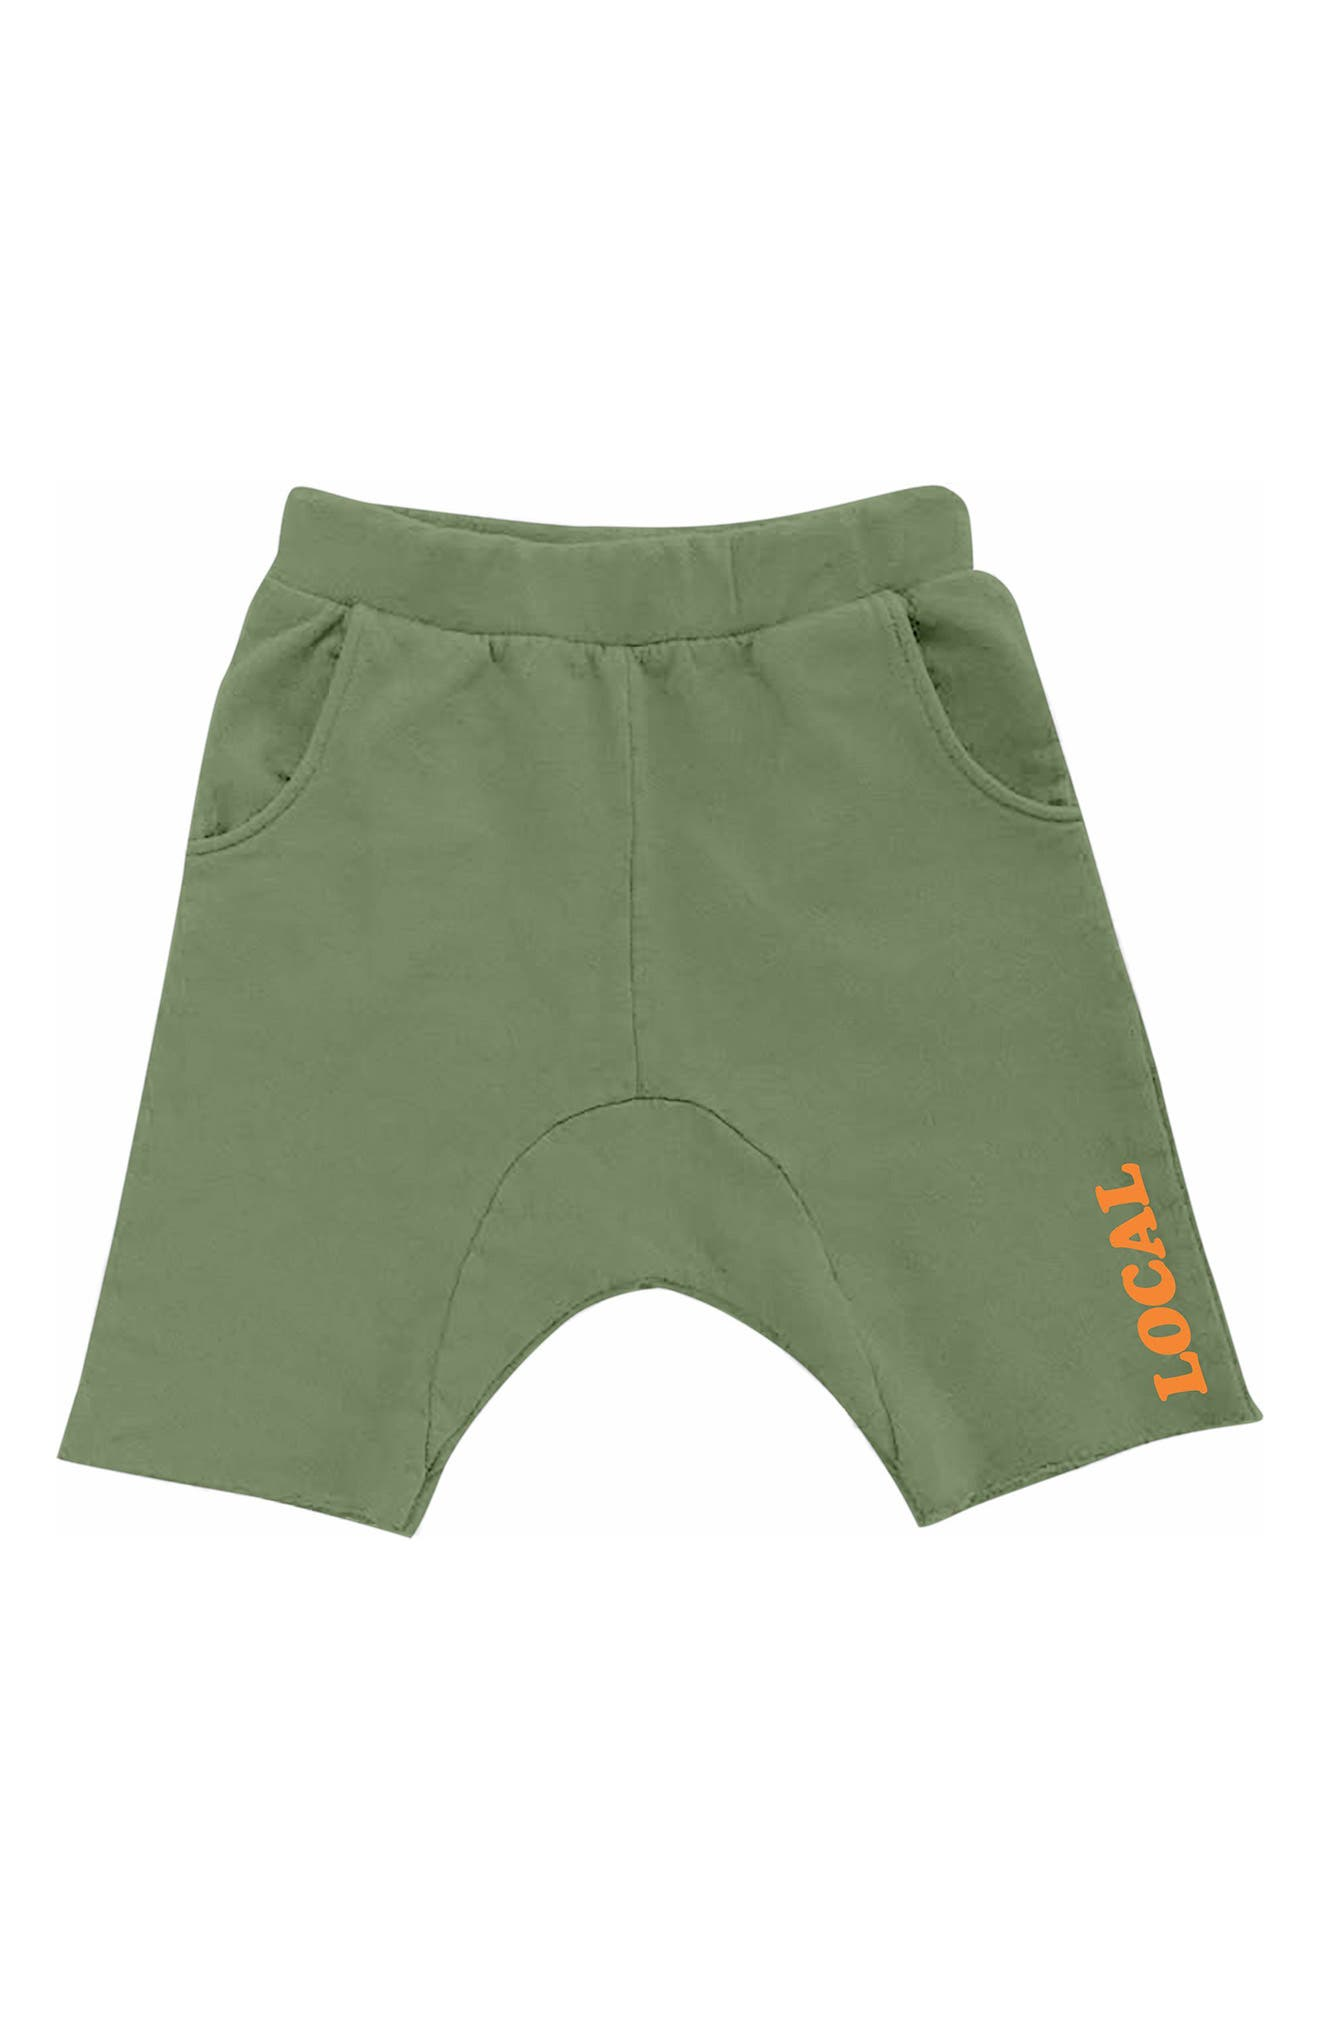 Alternate Image 1 Selected - Tiny Whales Cozy Time Shorts (Toddler Boys, Little Boys & Big Boys)